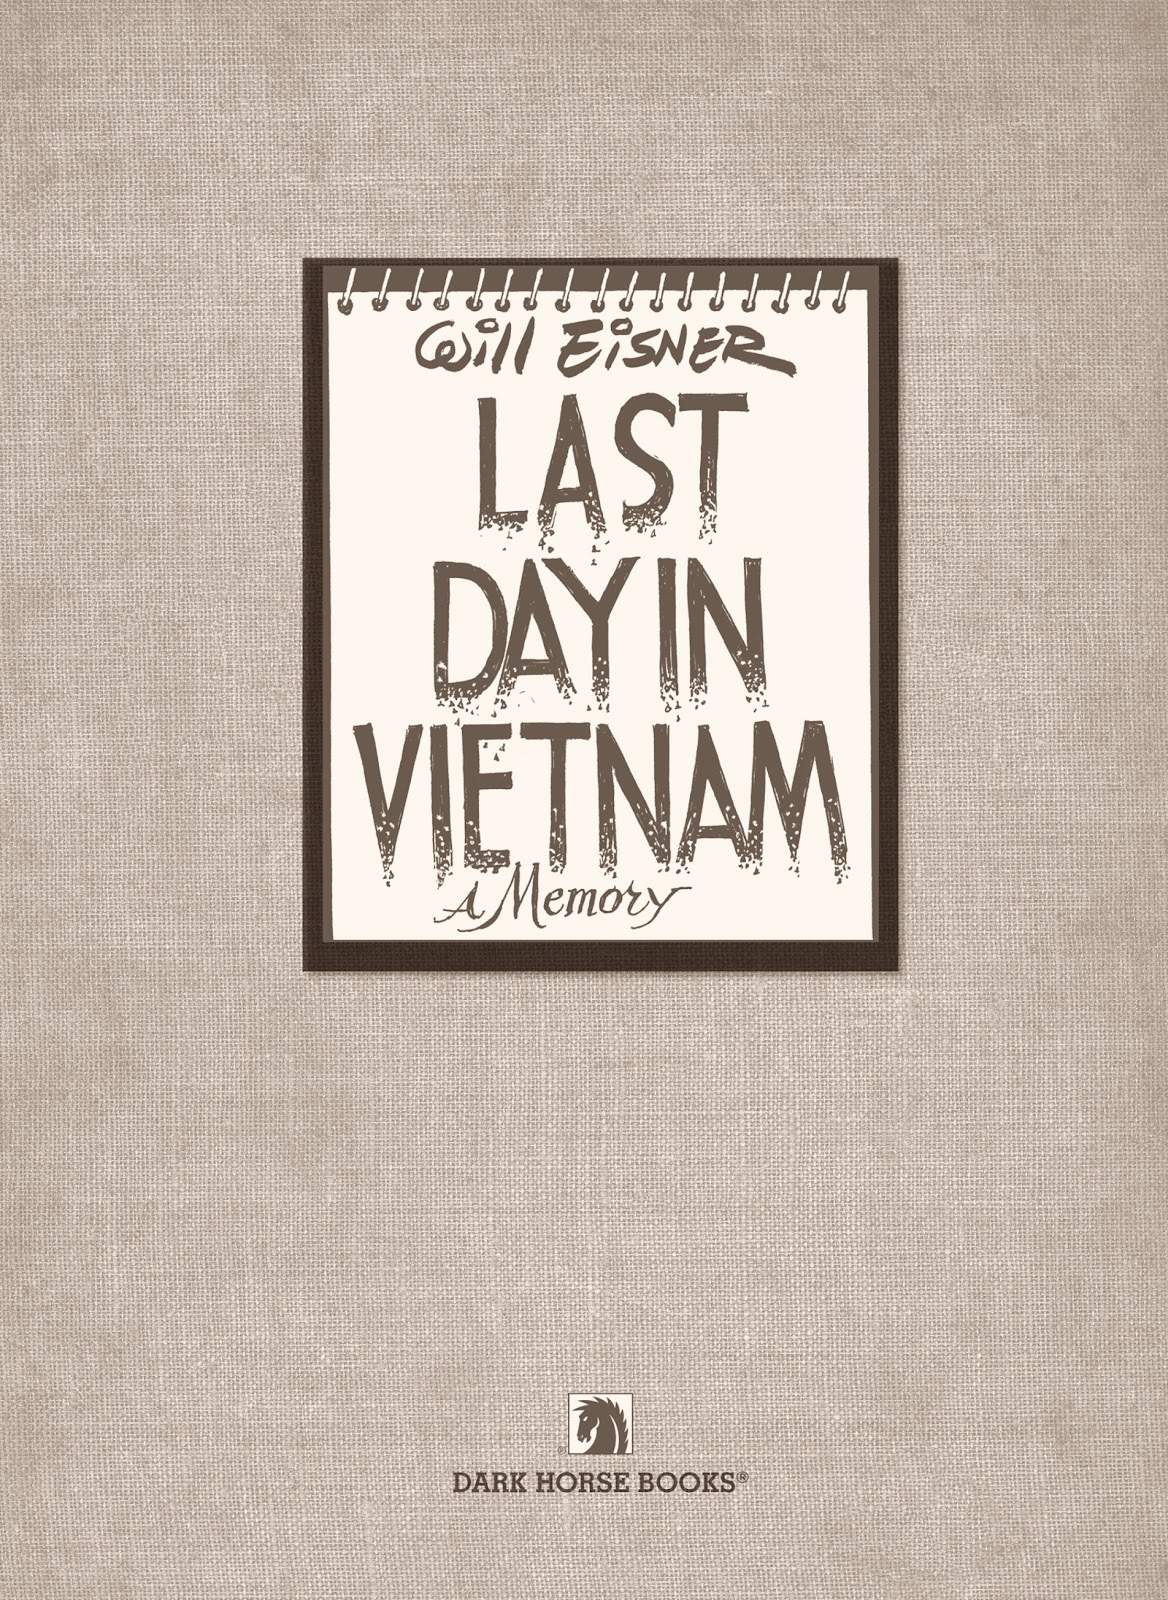 Read online Last Day in Vietnam comic -  Issue # TPB - 3